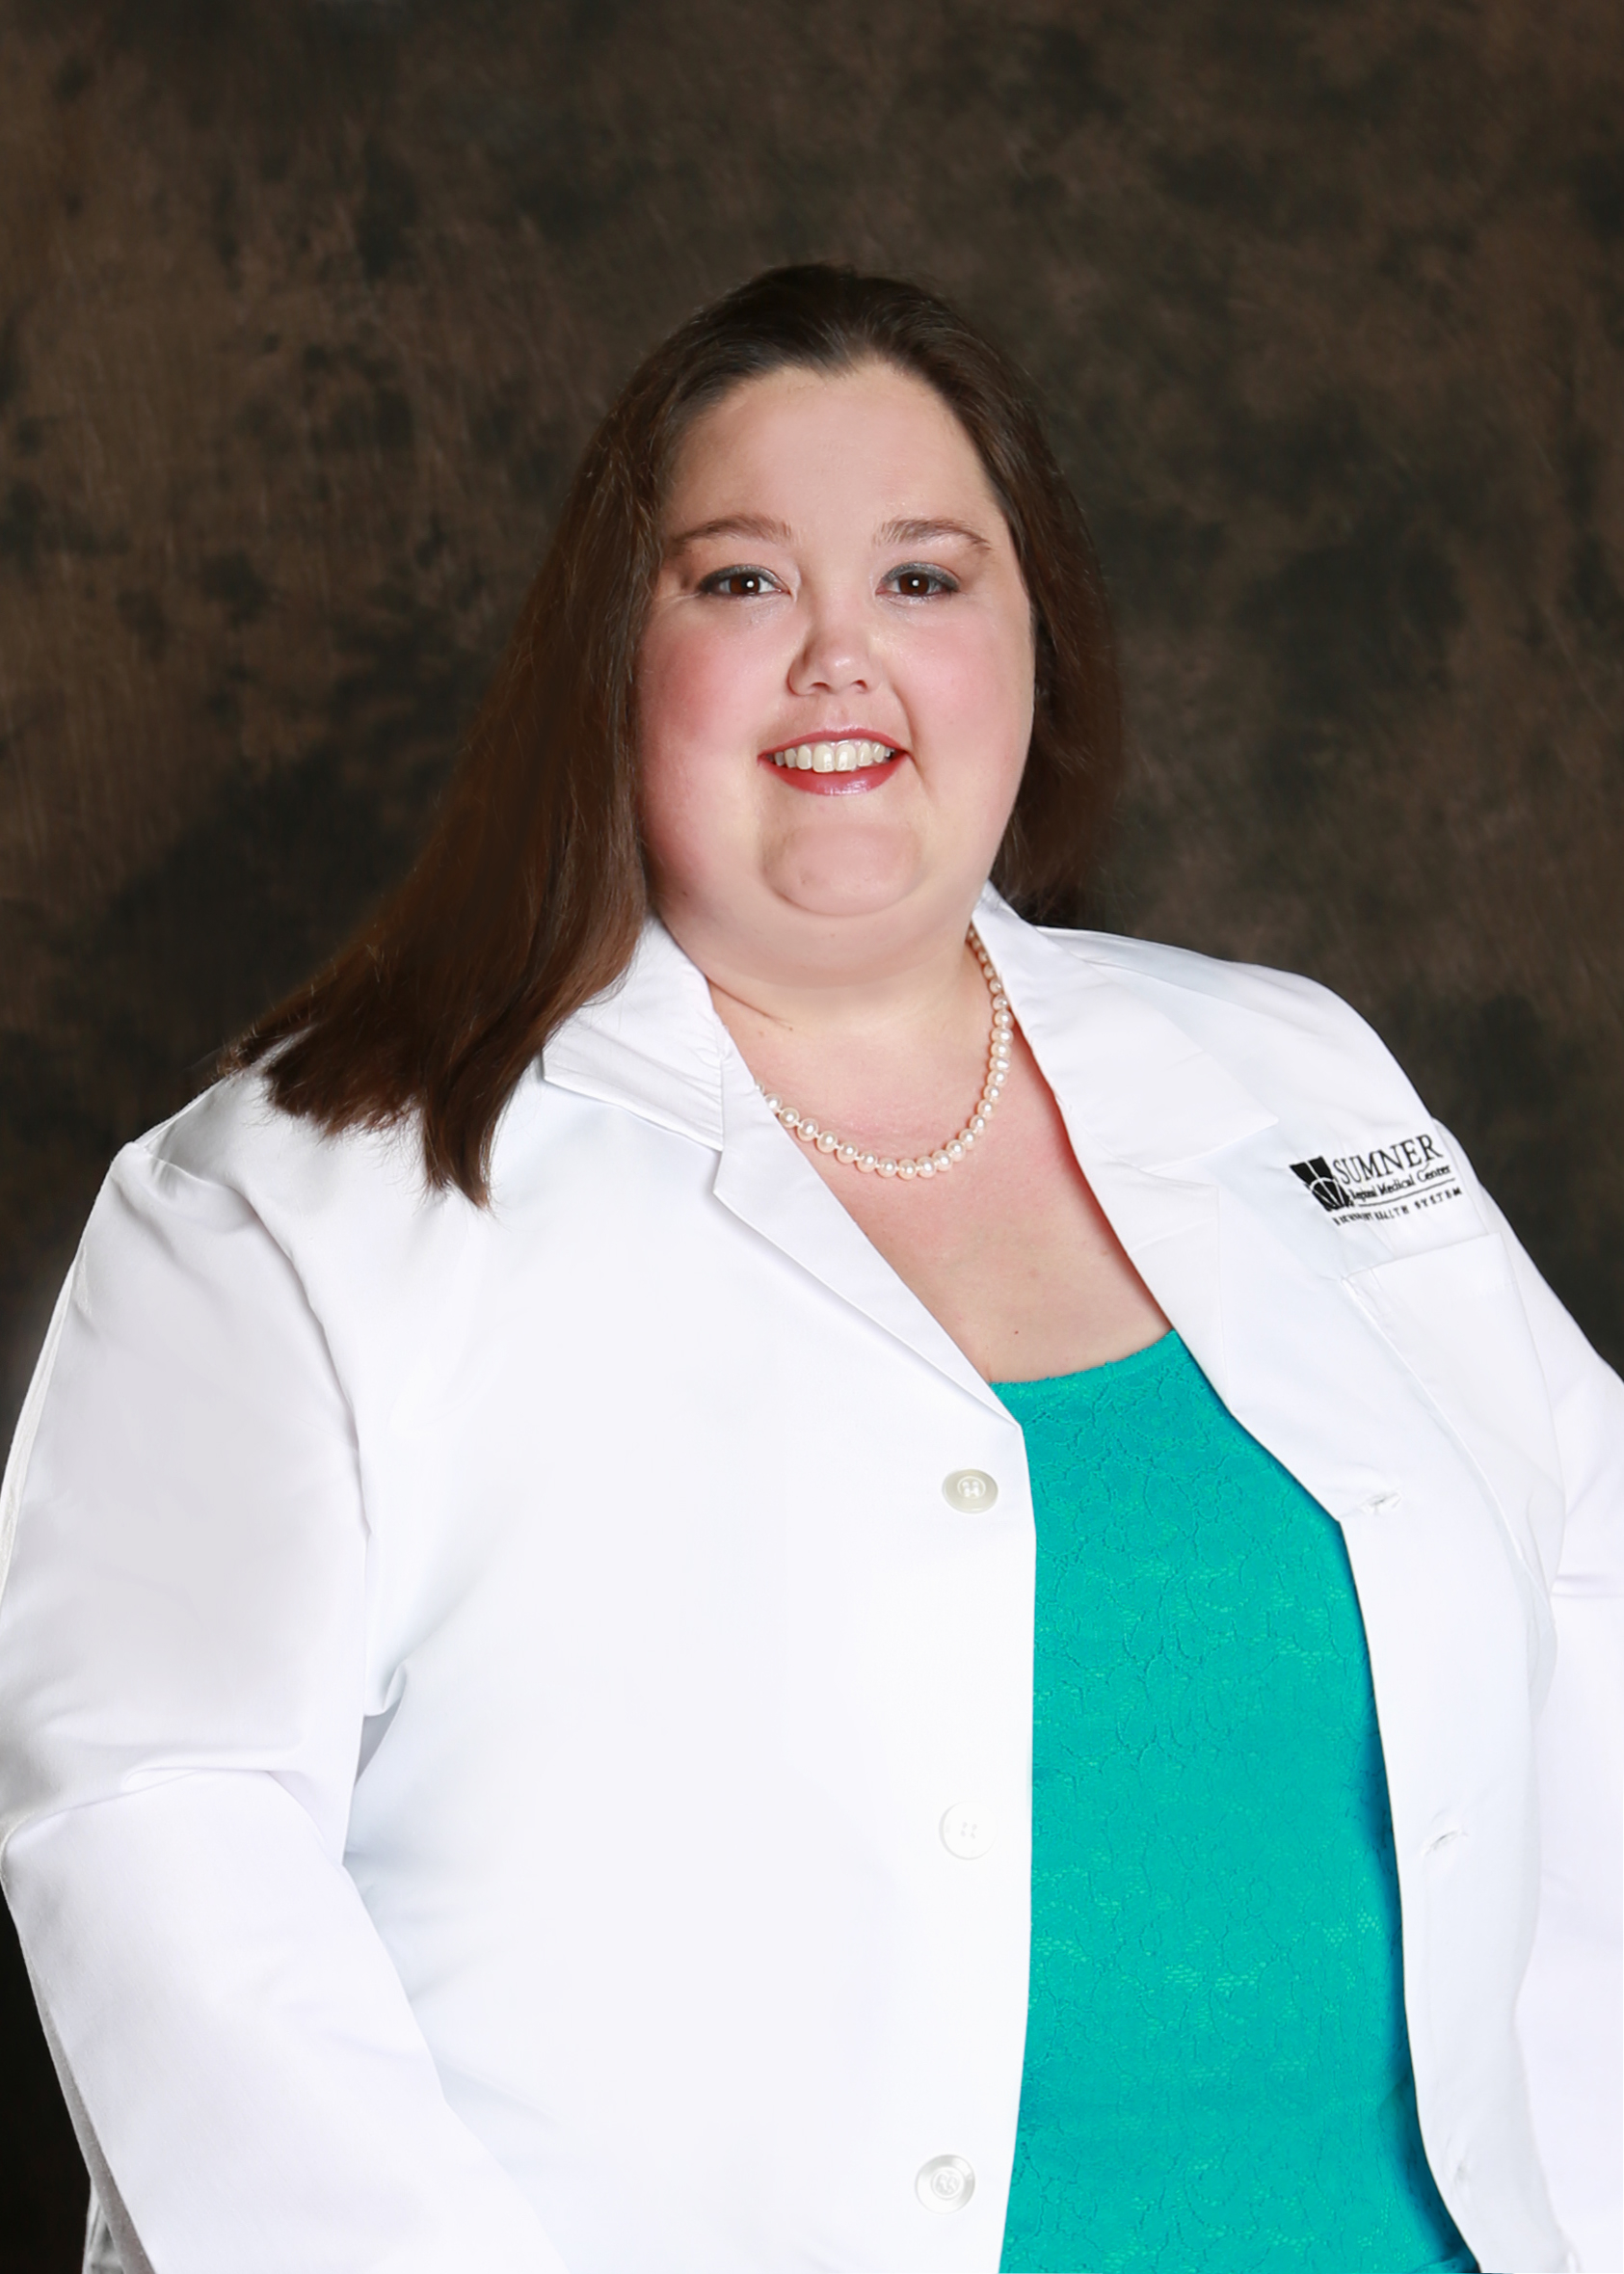 Megan McCauley, MD